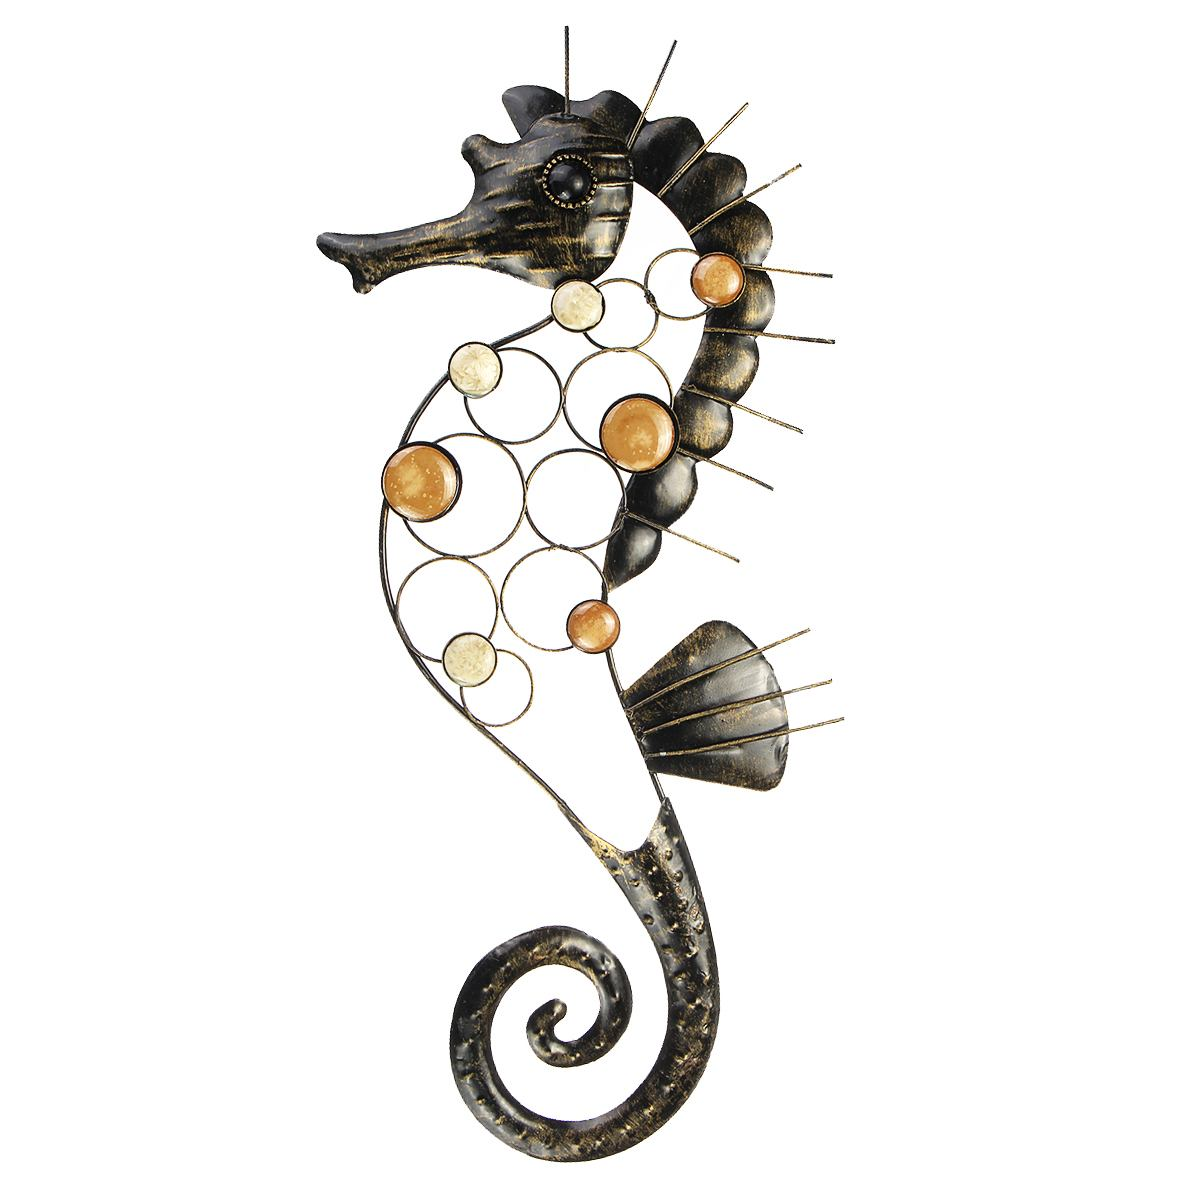 Large Metal Craft Seahorse Hanging Wall Art Garden 3D Decor Outdoor Indoor Home Ornament